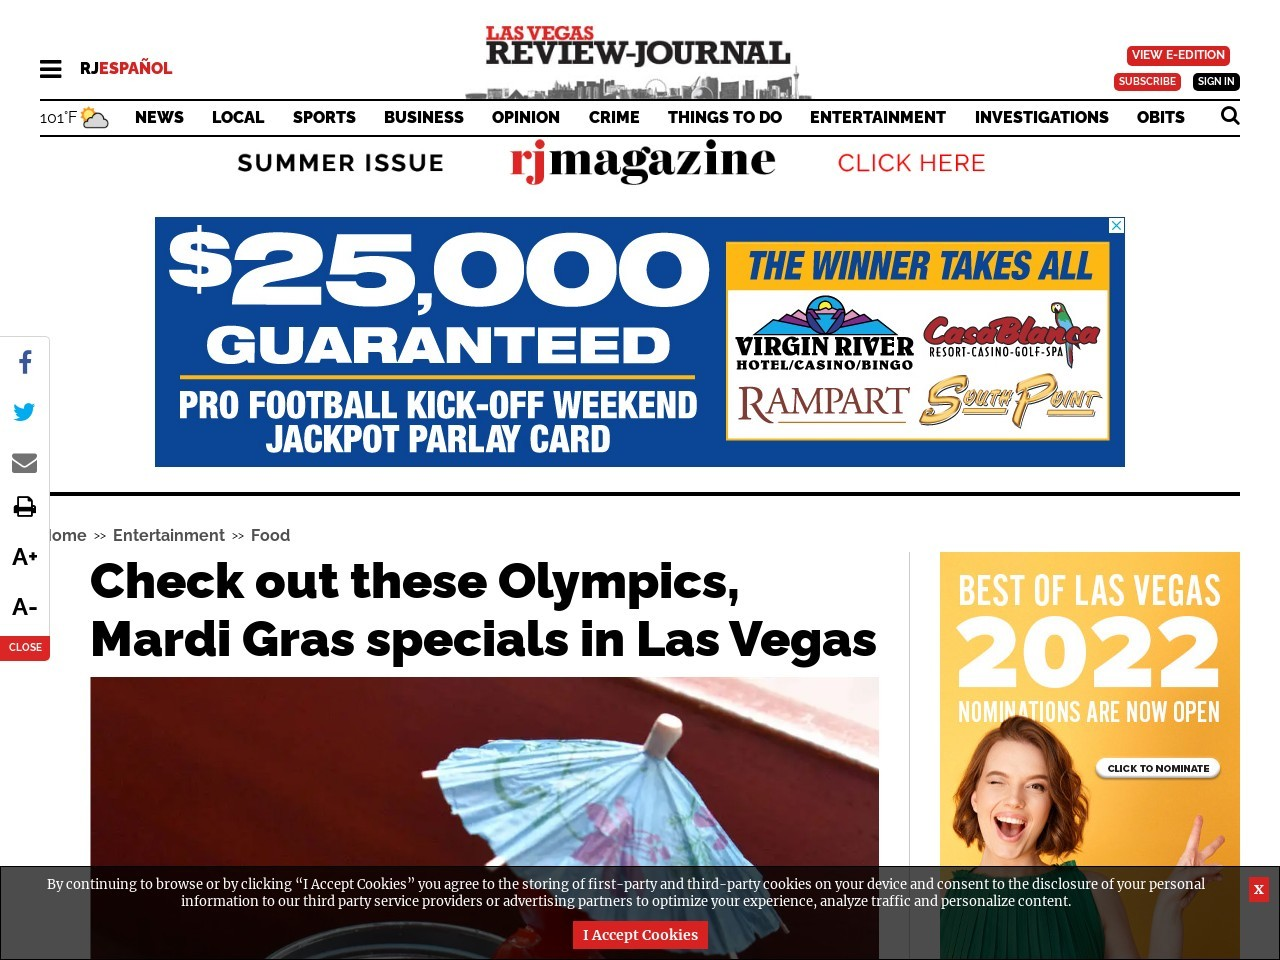 Check out these Olympics, Mardi Gras specials in Las Vegas